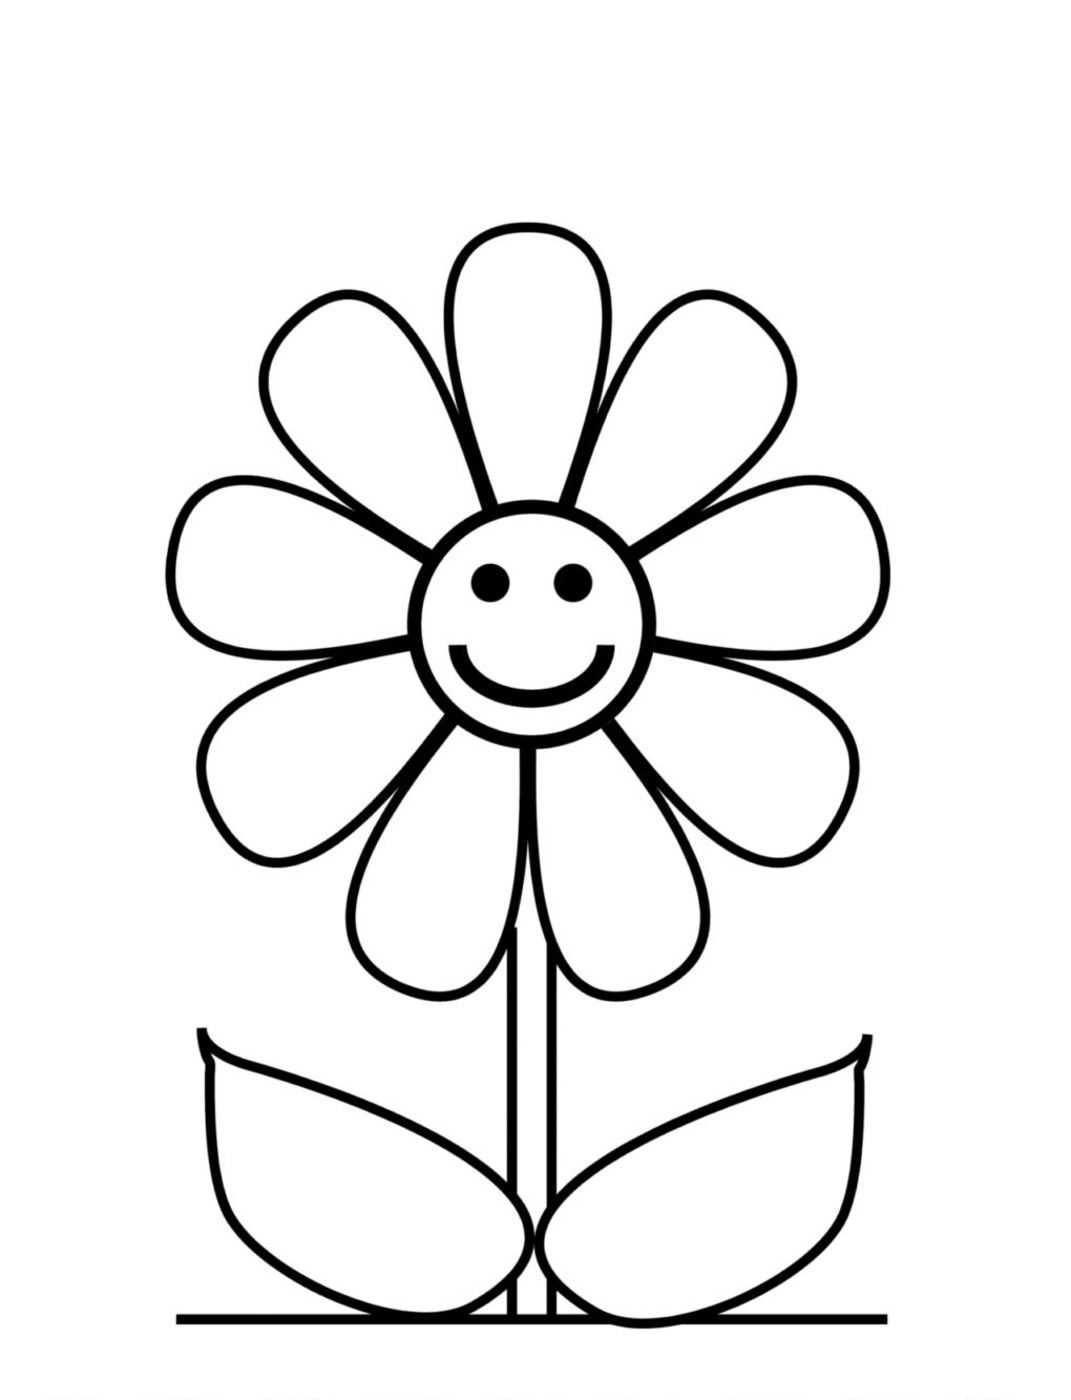 Free Printable Hibiscus Coloring Pages For Kids Flower